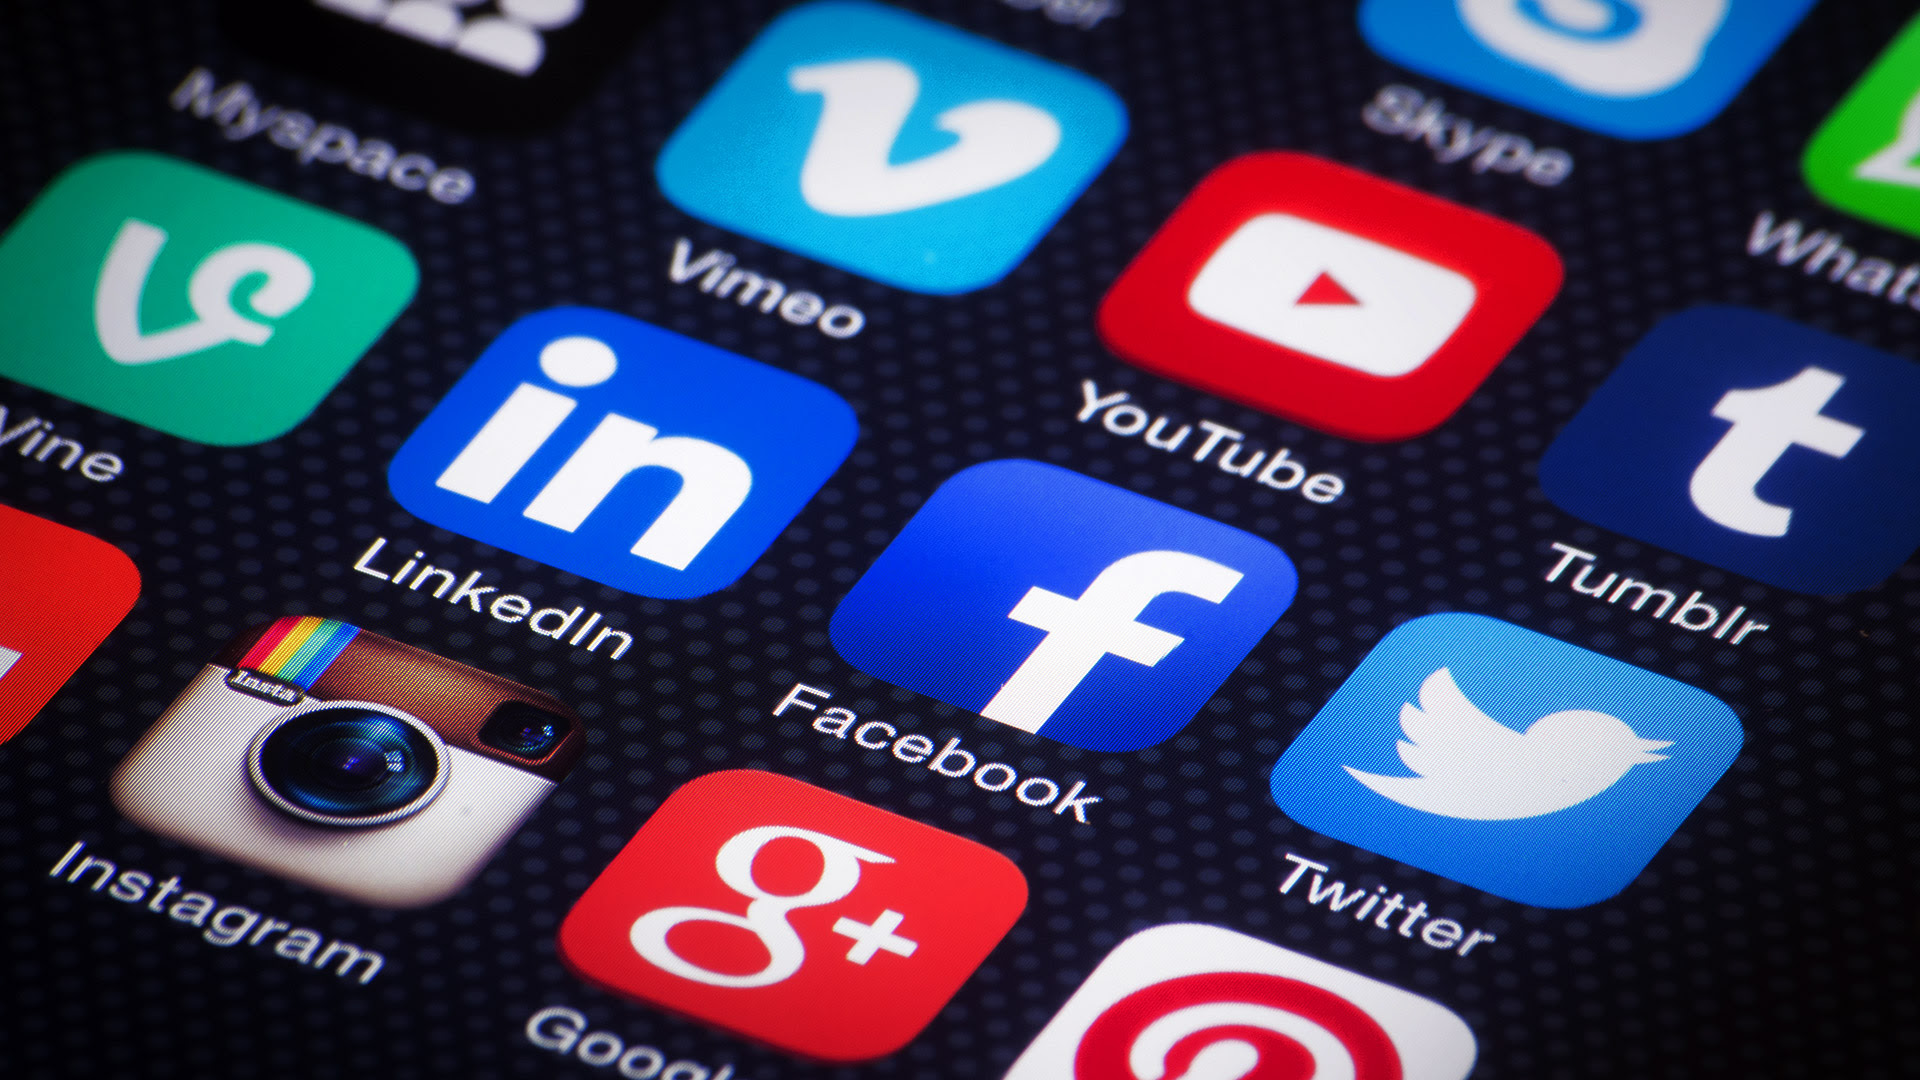 6 Apps Nigerians Are Likely to Use Every Day